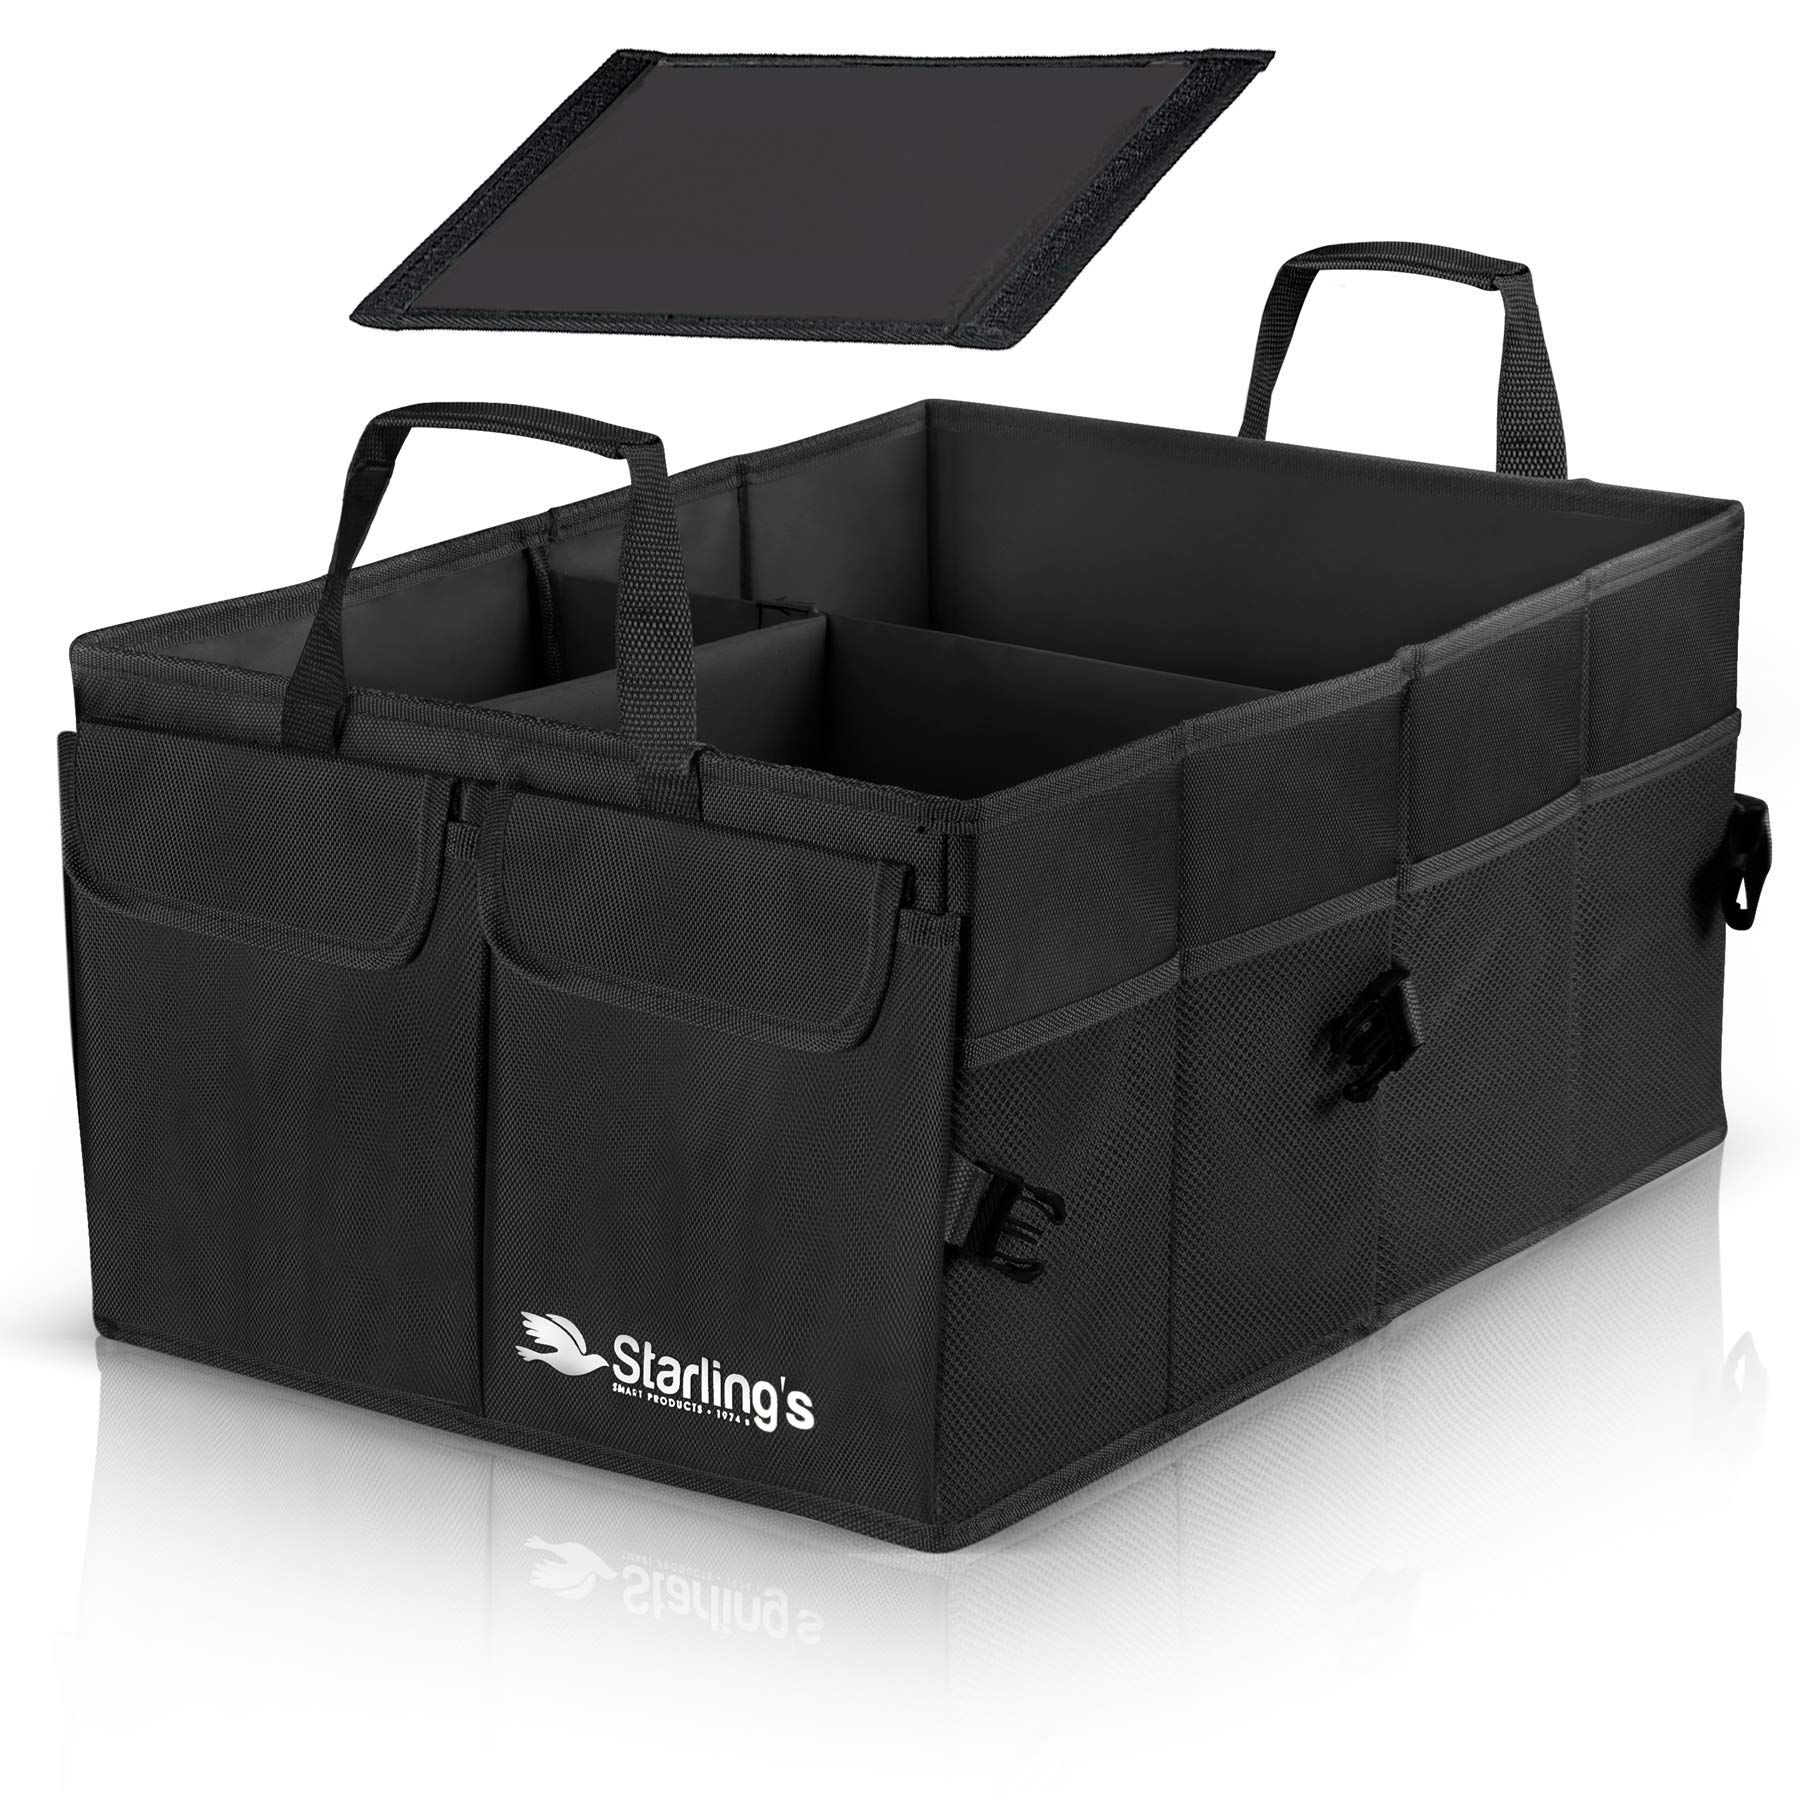 Starlings Car Trunk Organizer Super Strong, Foldable